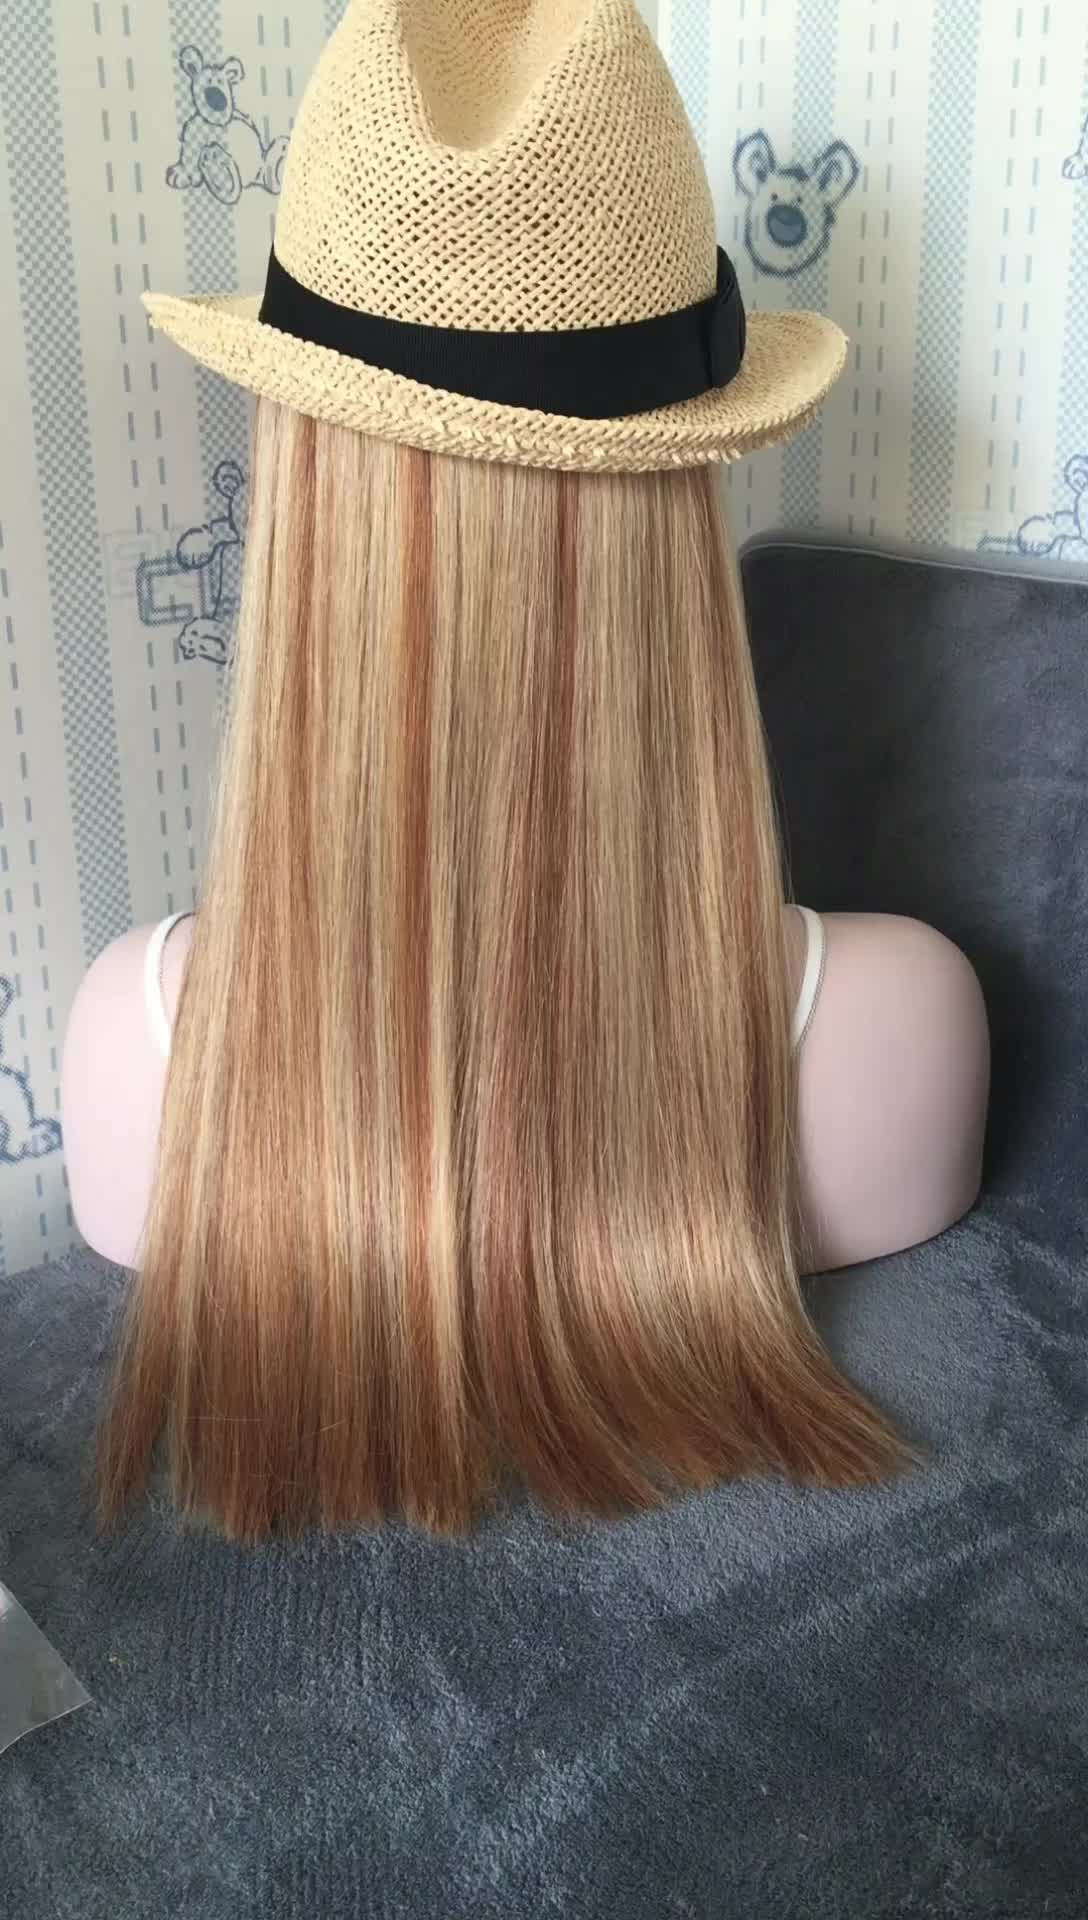 100 Real Remy Human Hair Factory Price White Girl Hair Extensions